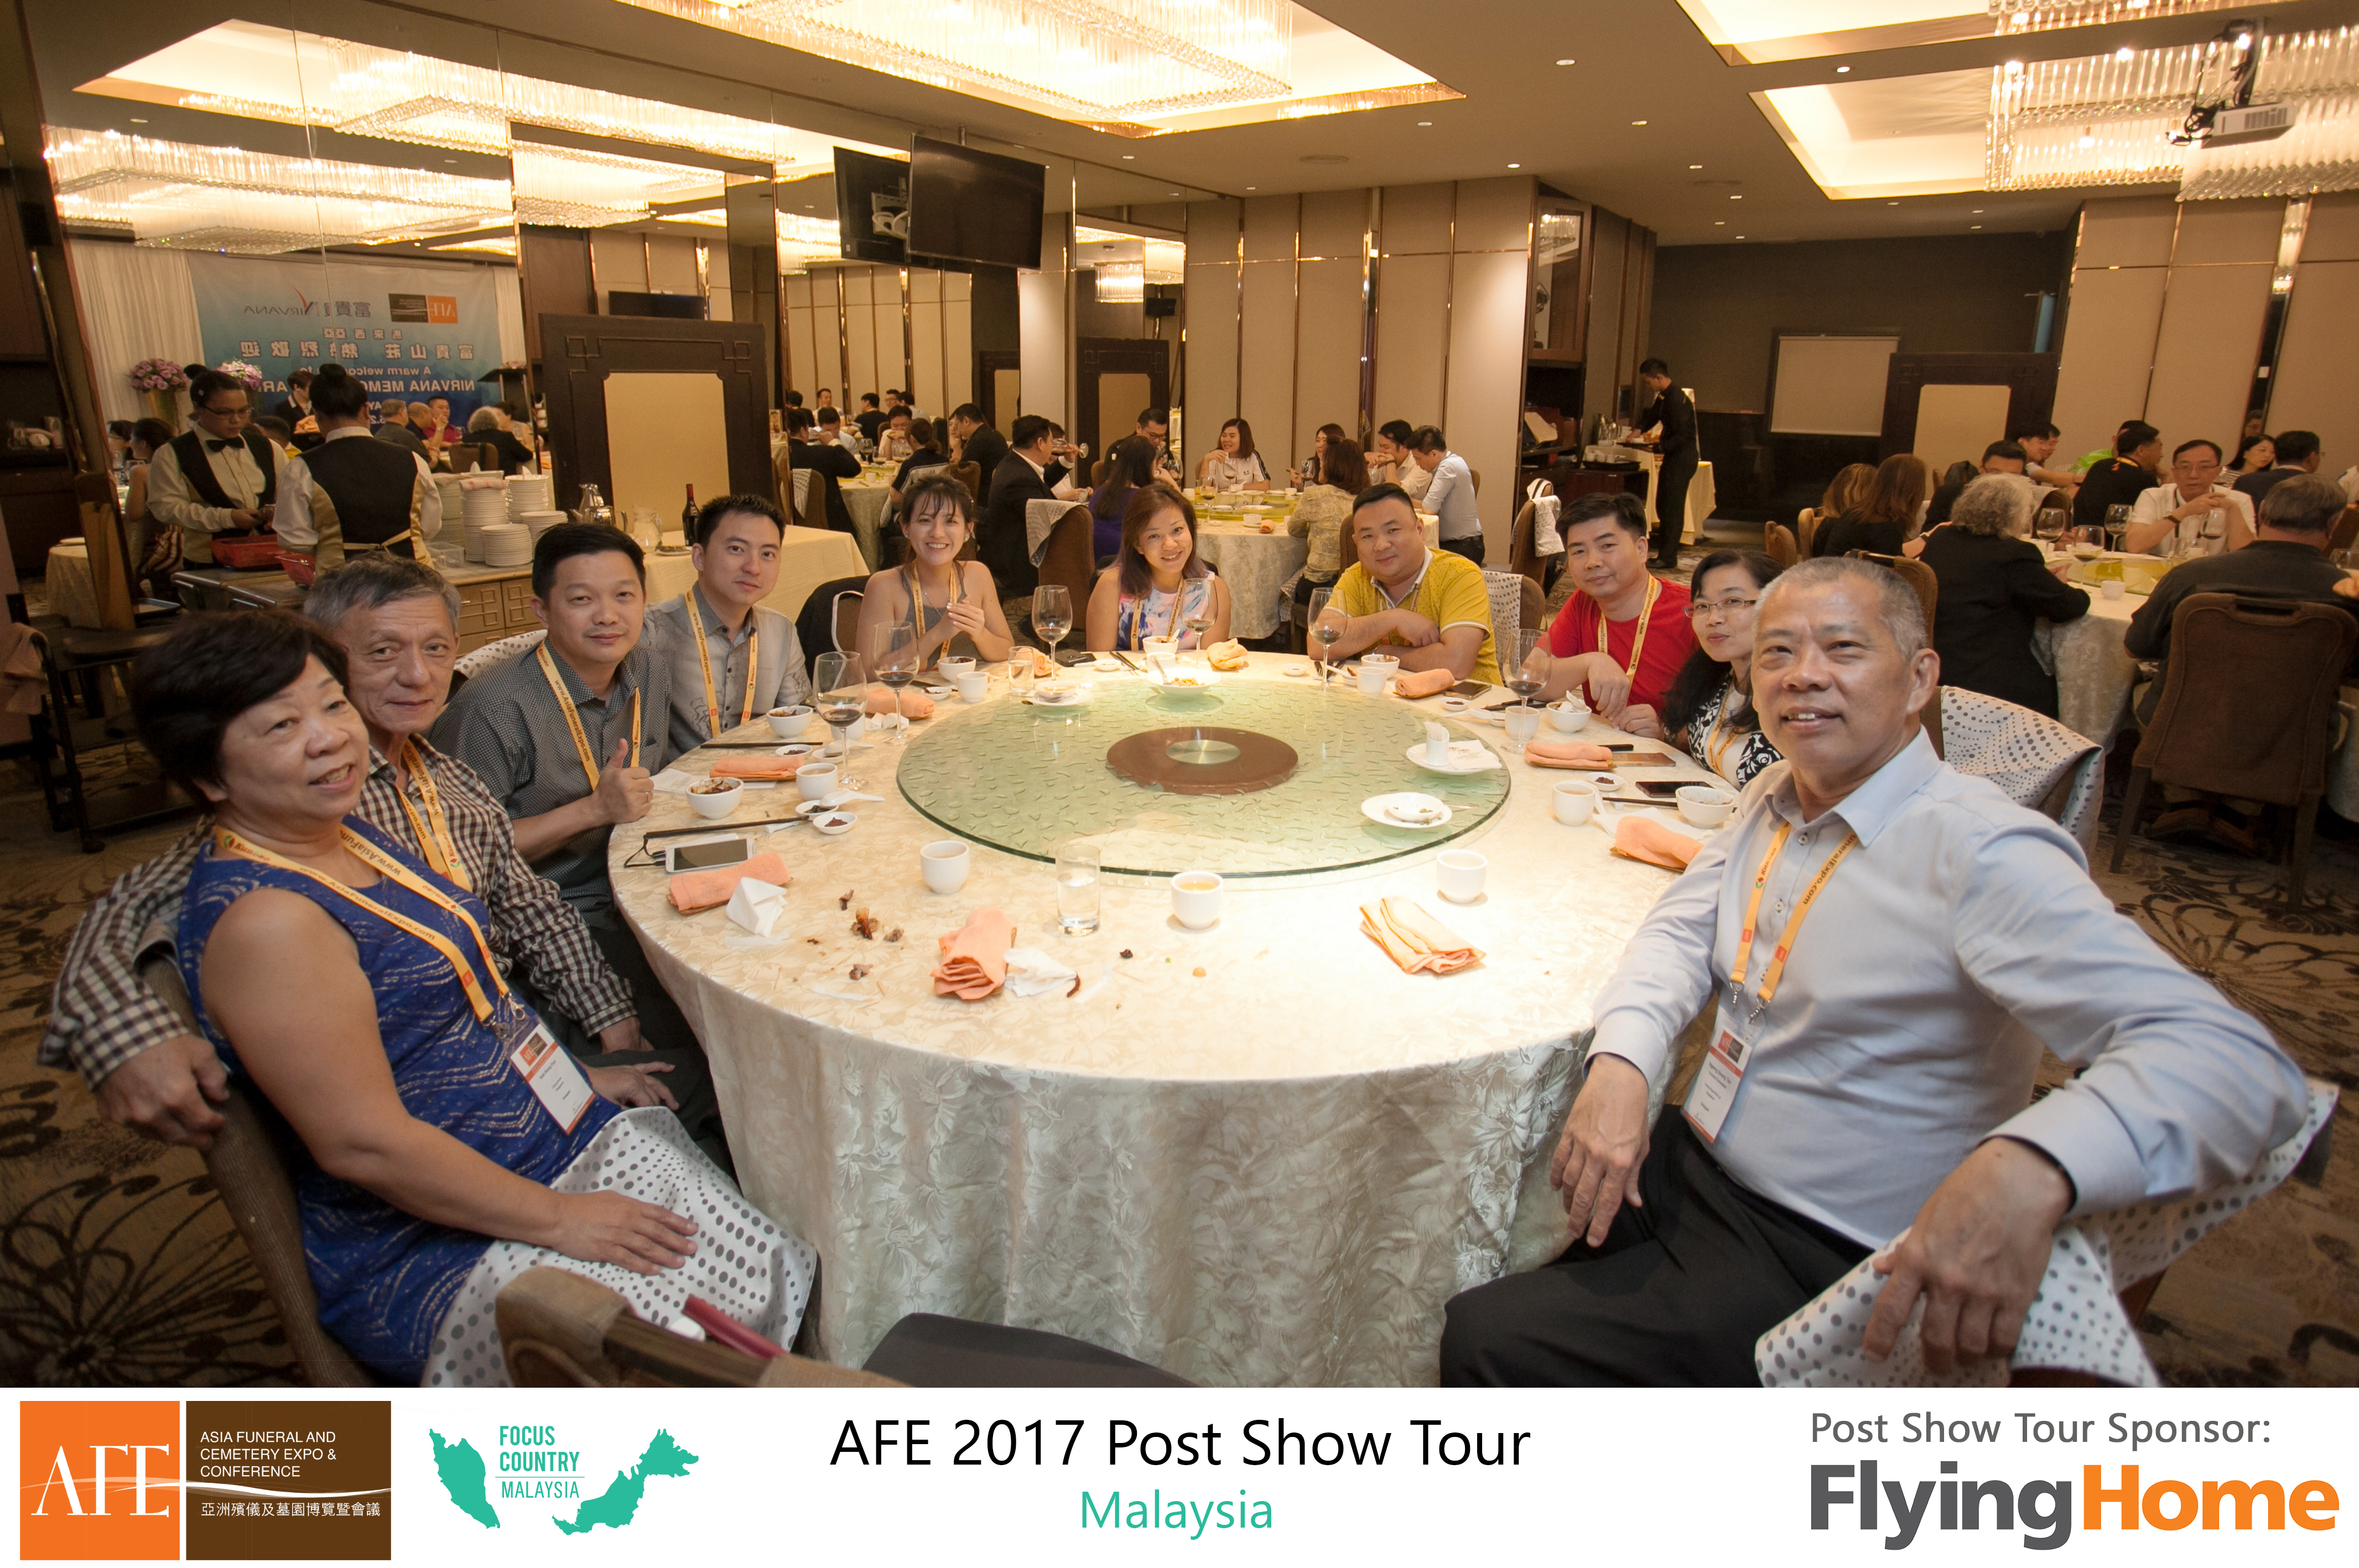 AFE Post Show Tour 2017 Day 2 - 37